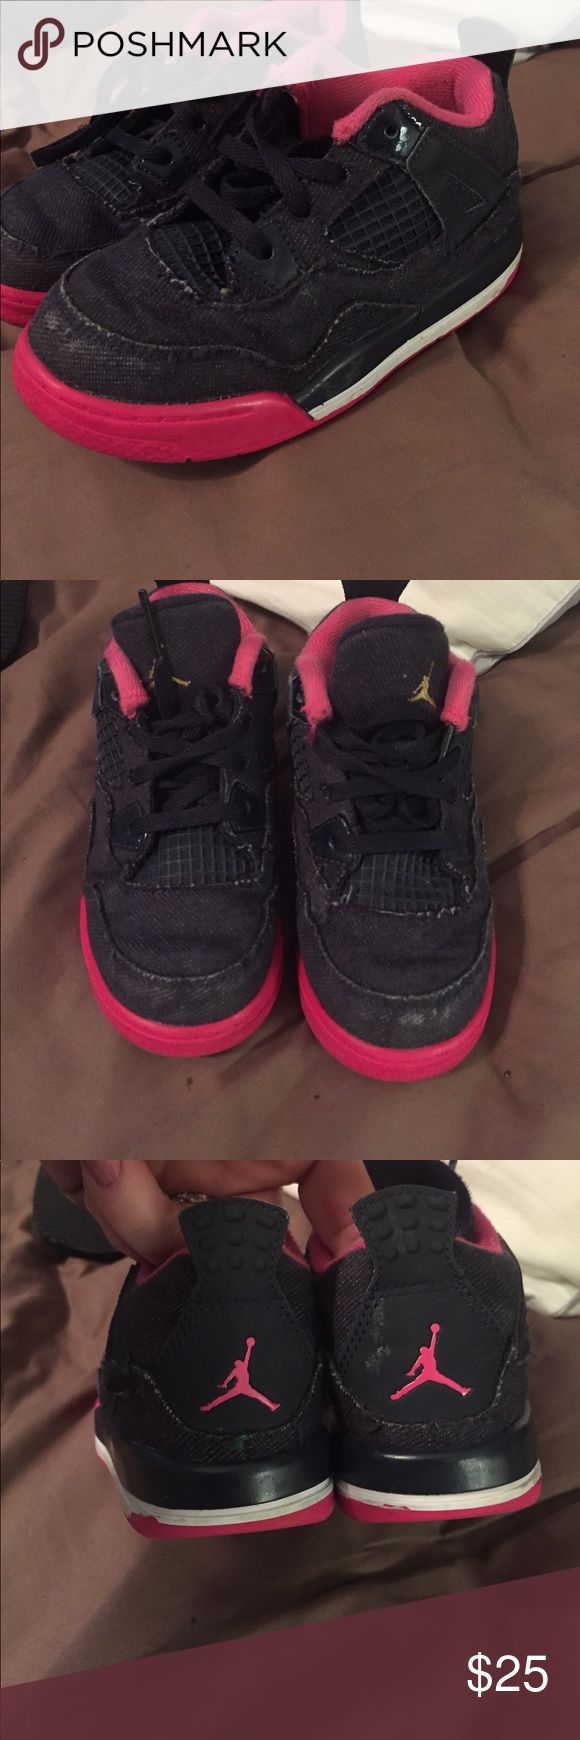 Lil girls Nike Air Jordan black/pink 9C cute Cute lil pair of Nike hi tops for baby girl size 9 C. They do shows signs of wear but have plenty of life left. Nike Shoes Sneakers